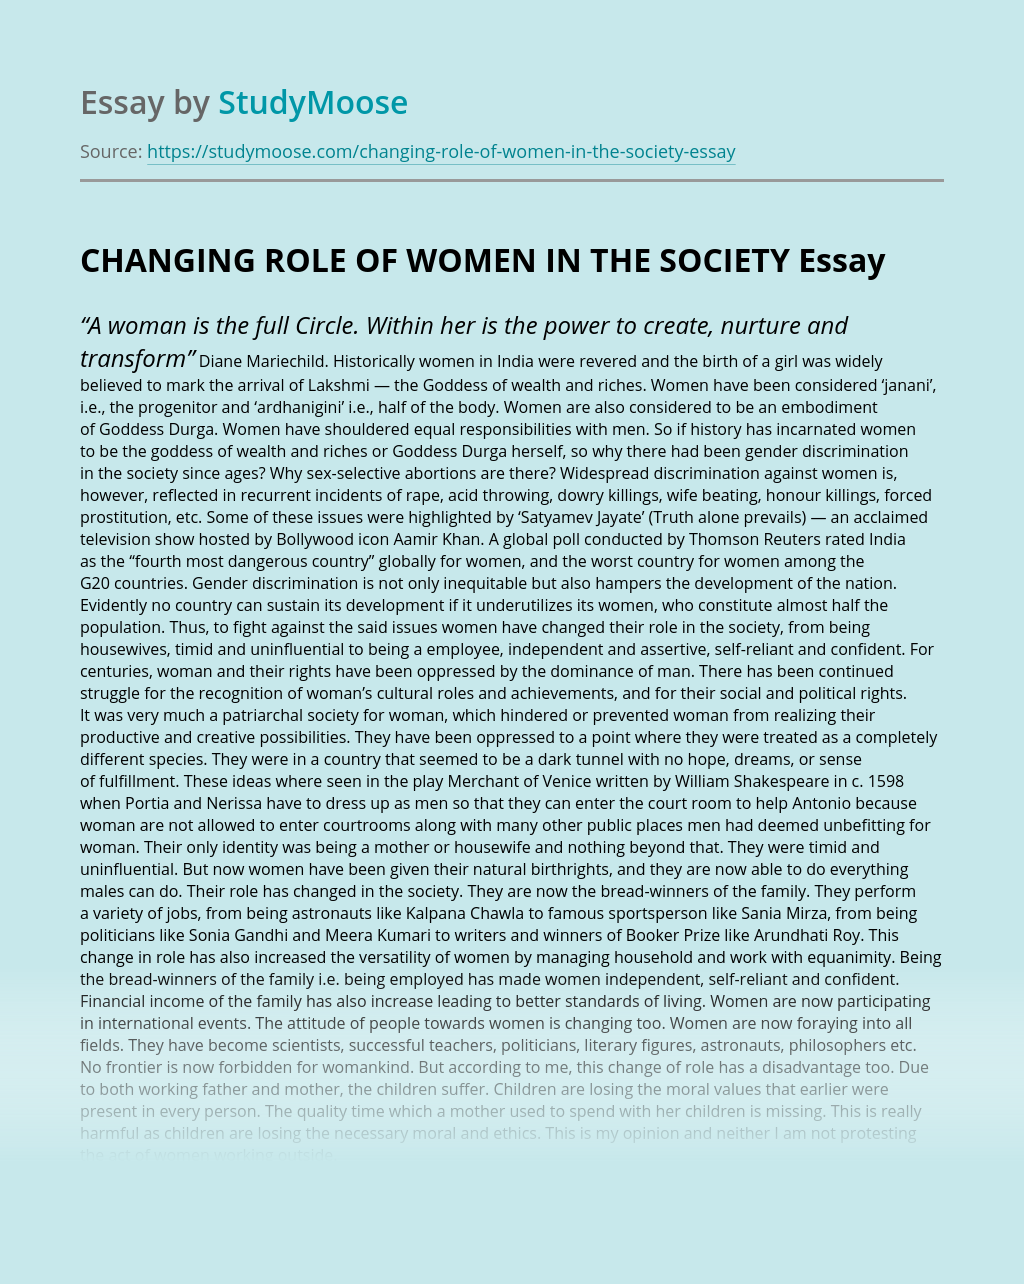 CHANGING ROLE OF WOMEN IN THE SOCIETY